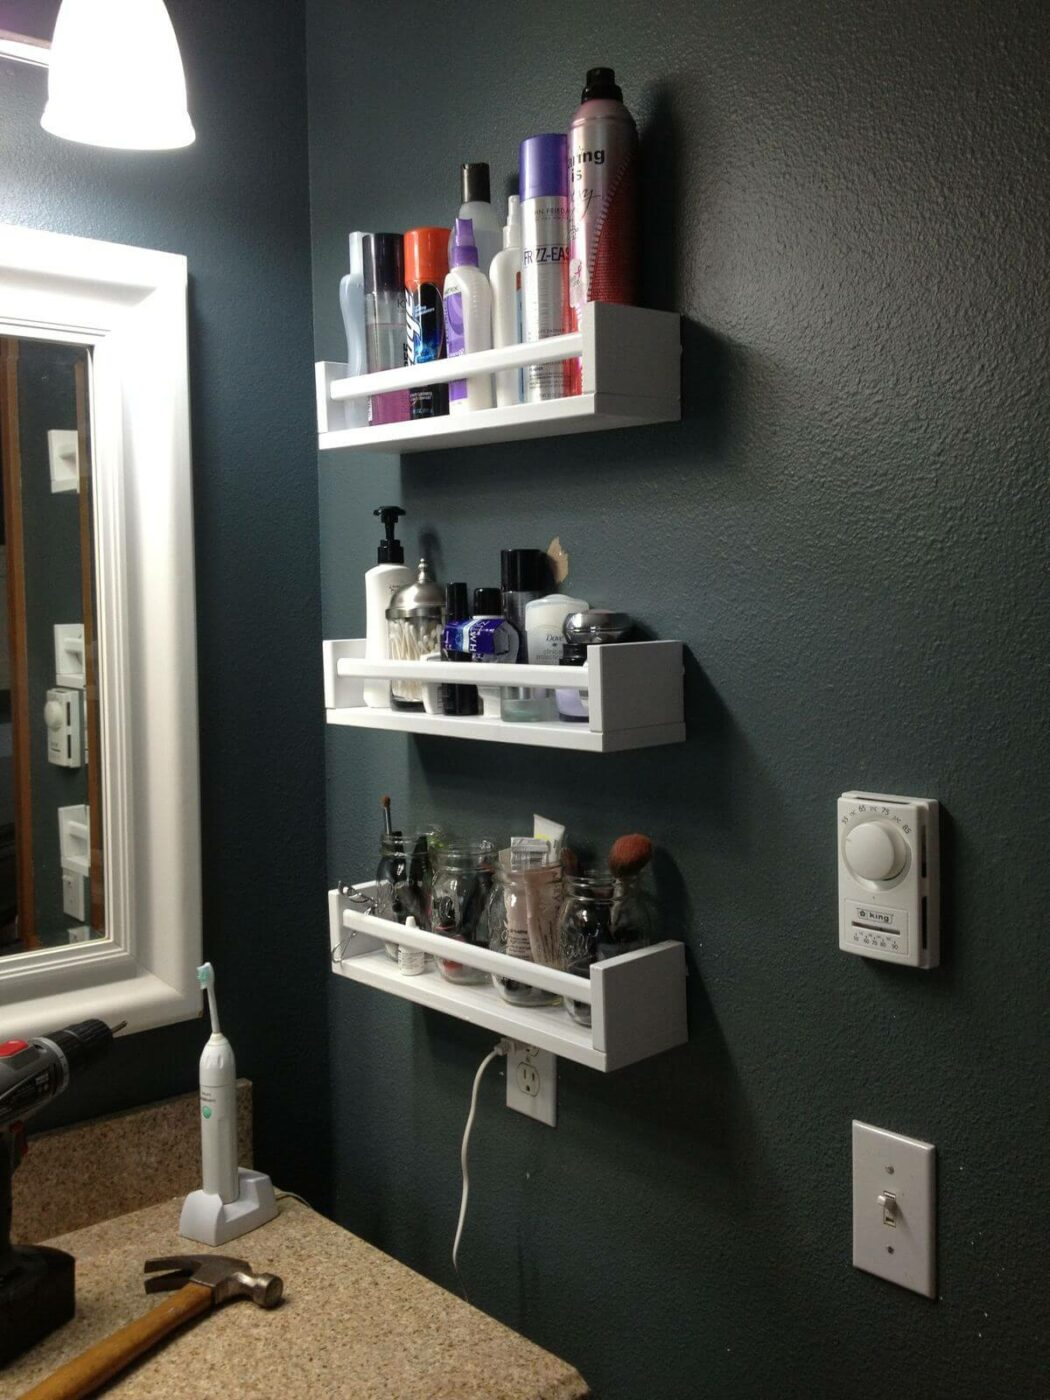 18 Amazing Storage Ideas to Organize Your Small Bathroom